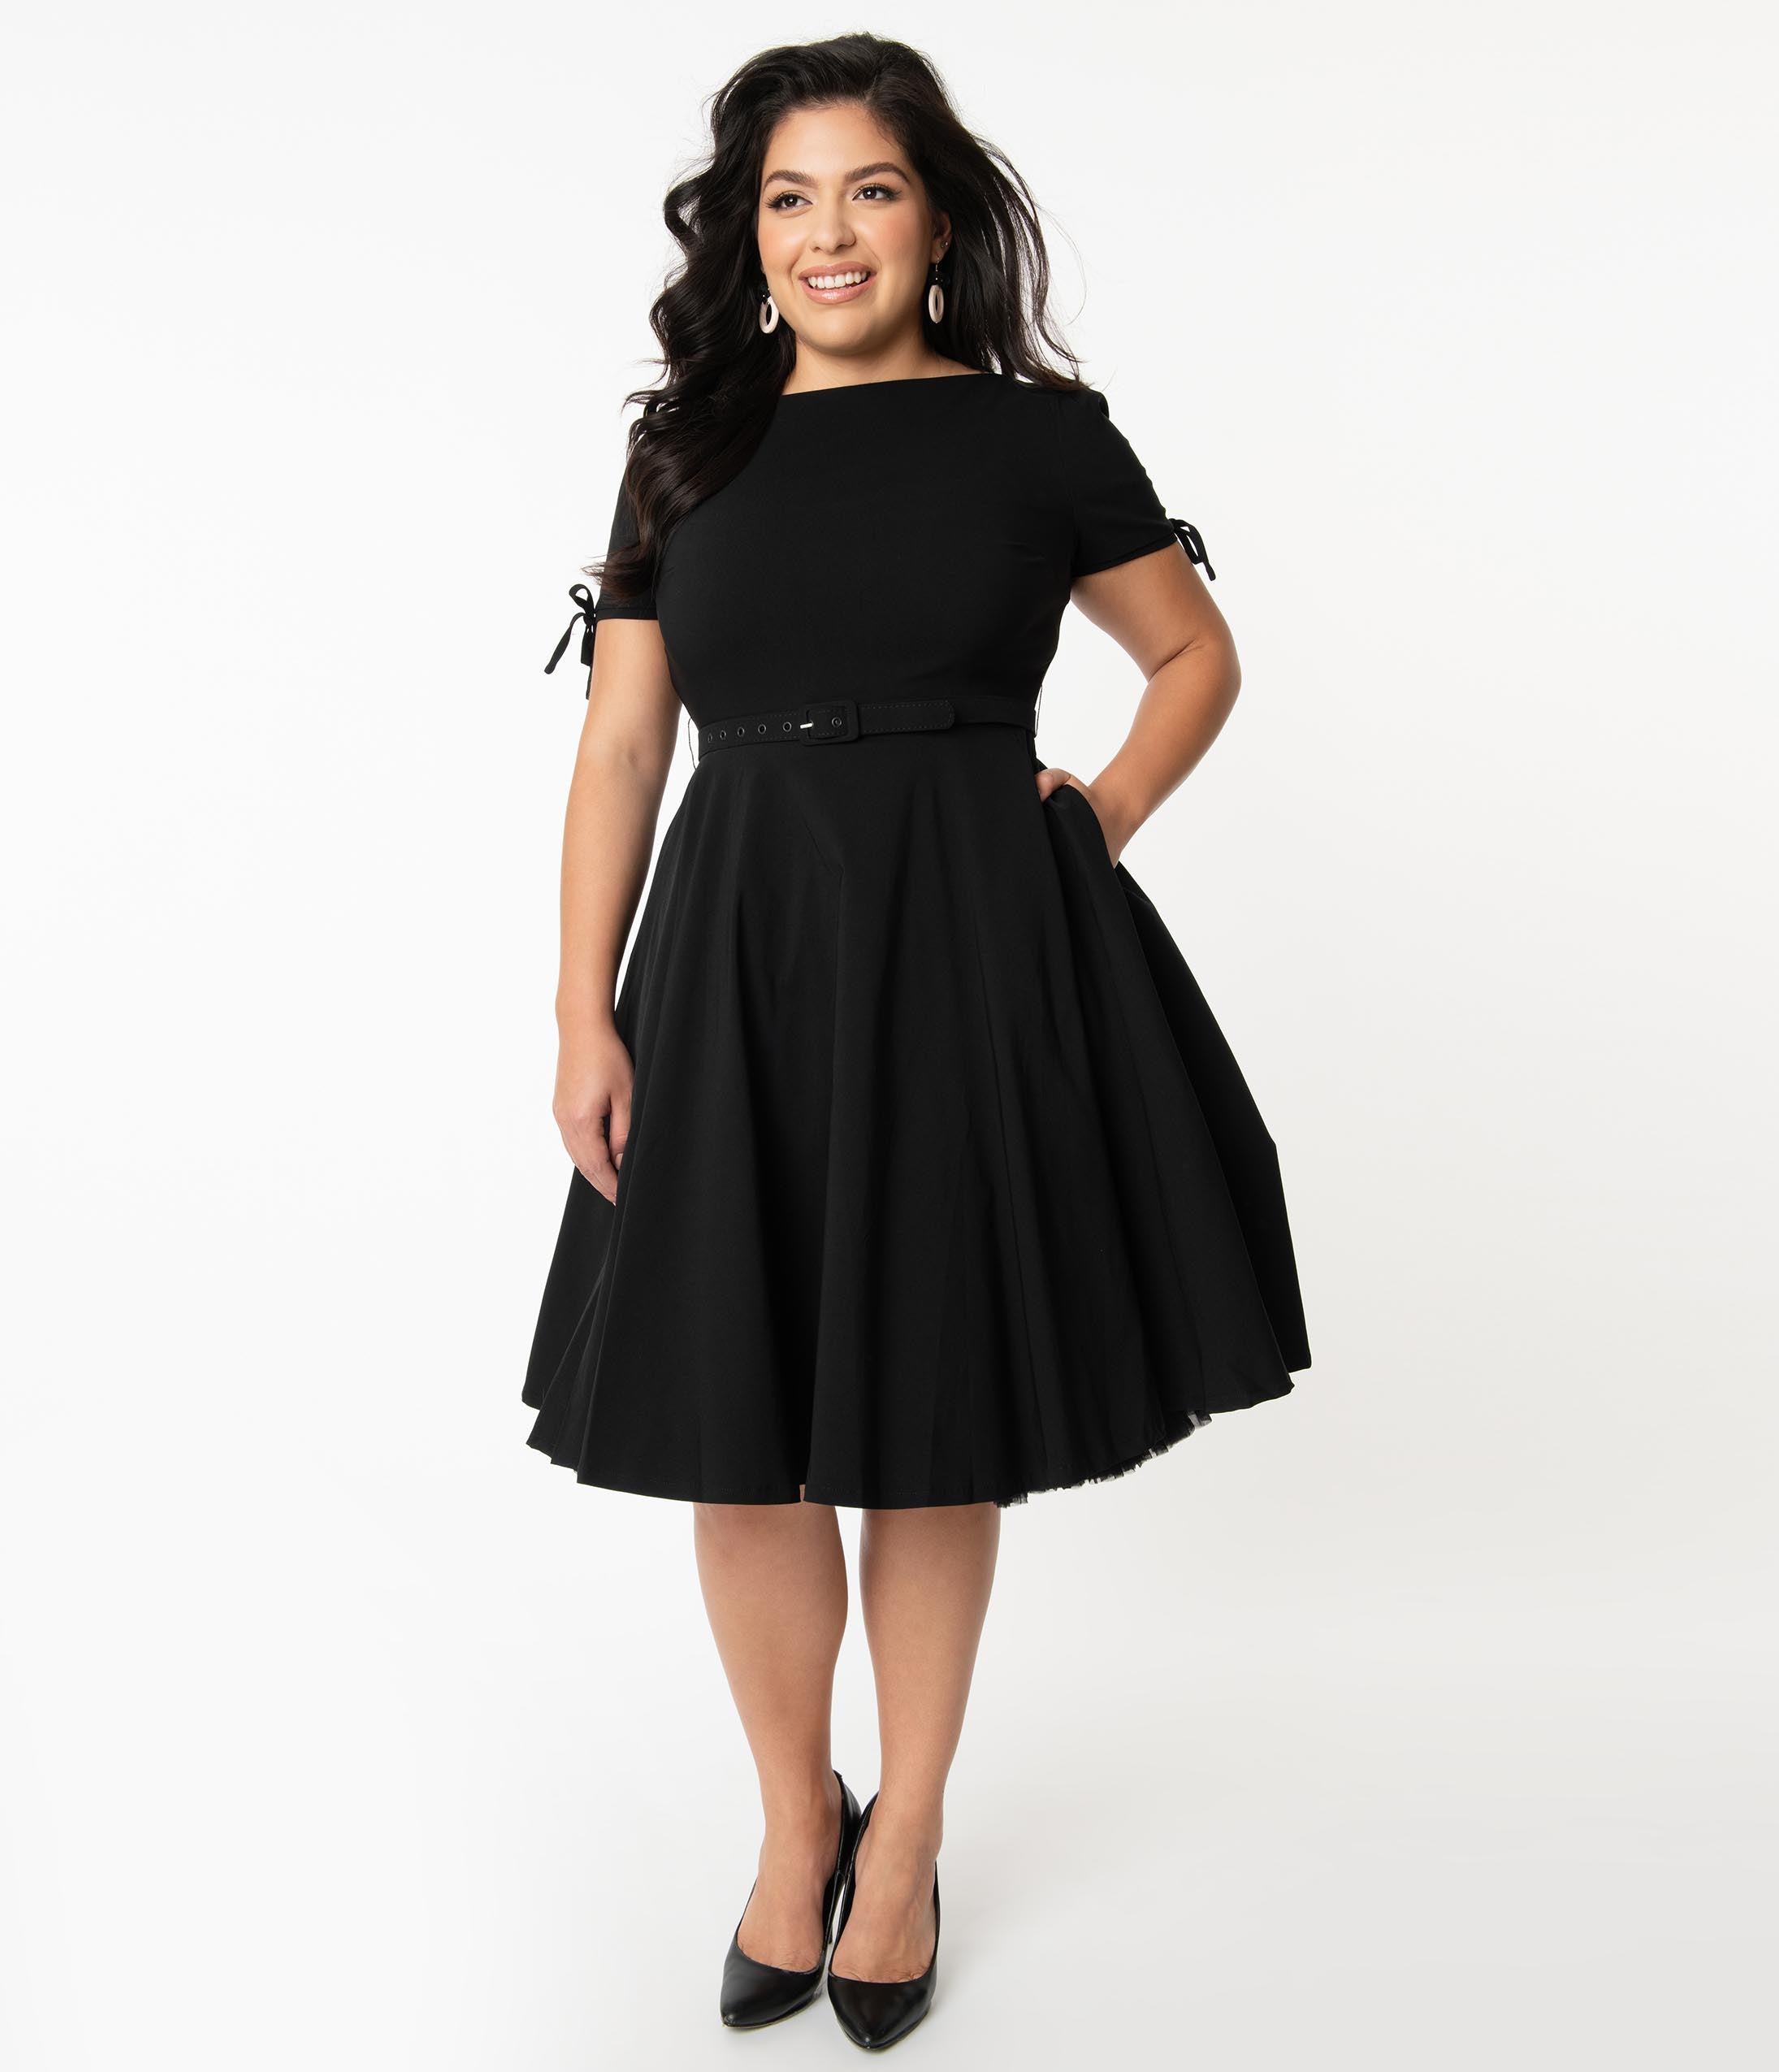 1950s Plus Size Fashion & Clothing History Unique Vintage Plus Size 1950S Black Sasha Swing Dress $78.00 AT vintagedancer.com